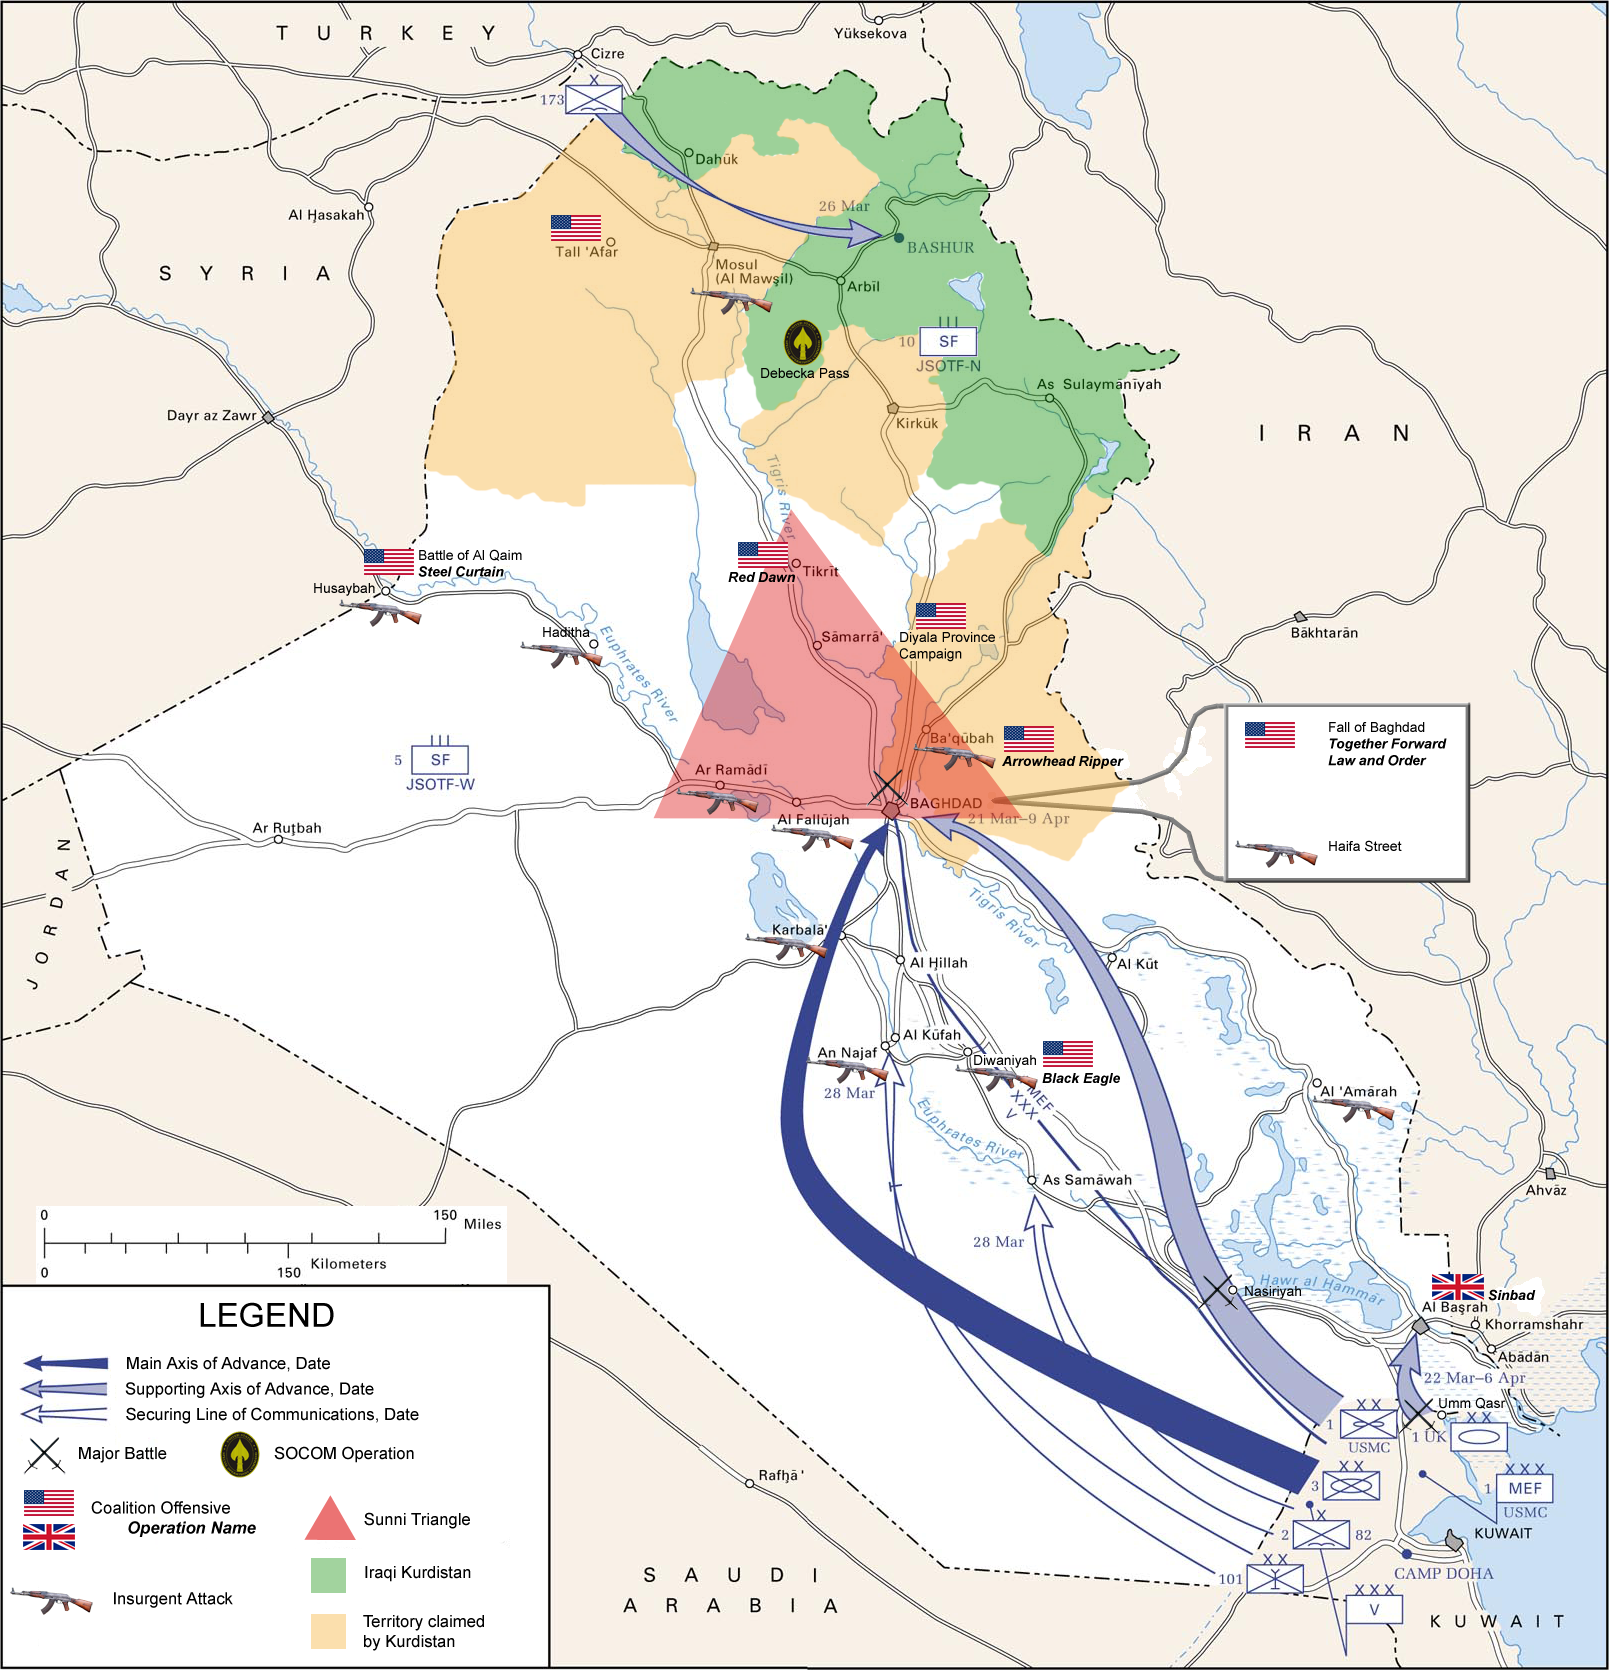 Map of the invasion routes and major operations/battles of the Iraq War as of 2007.